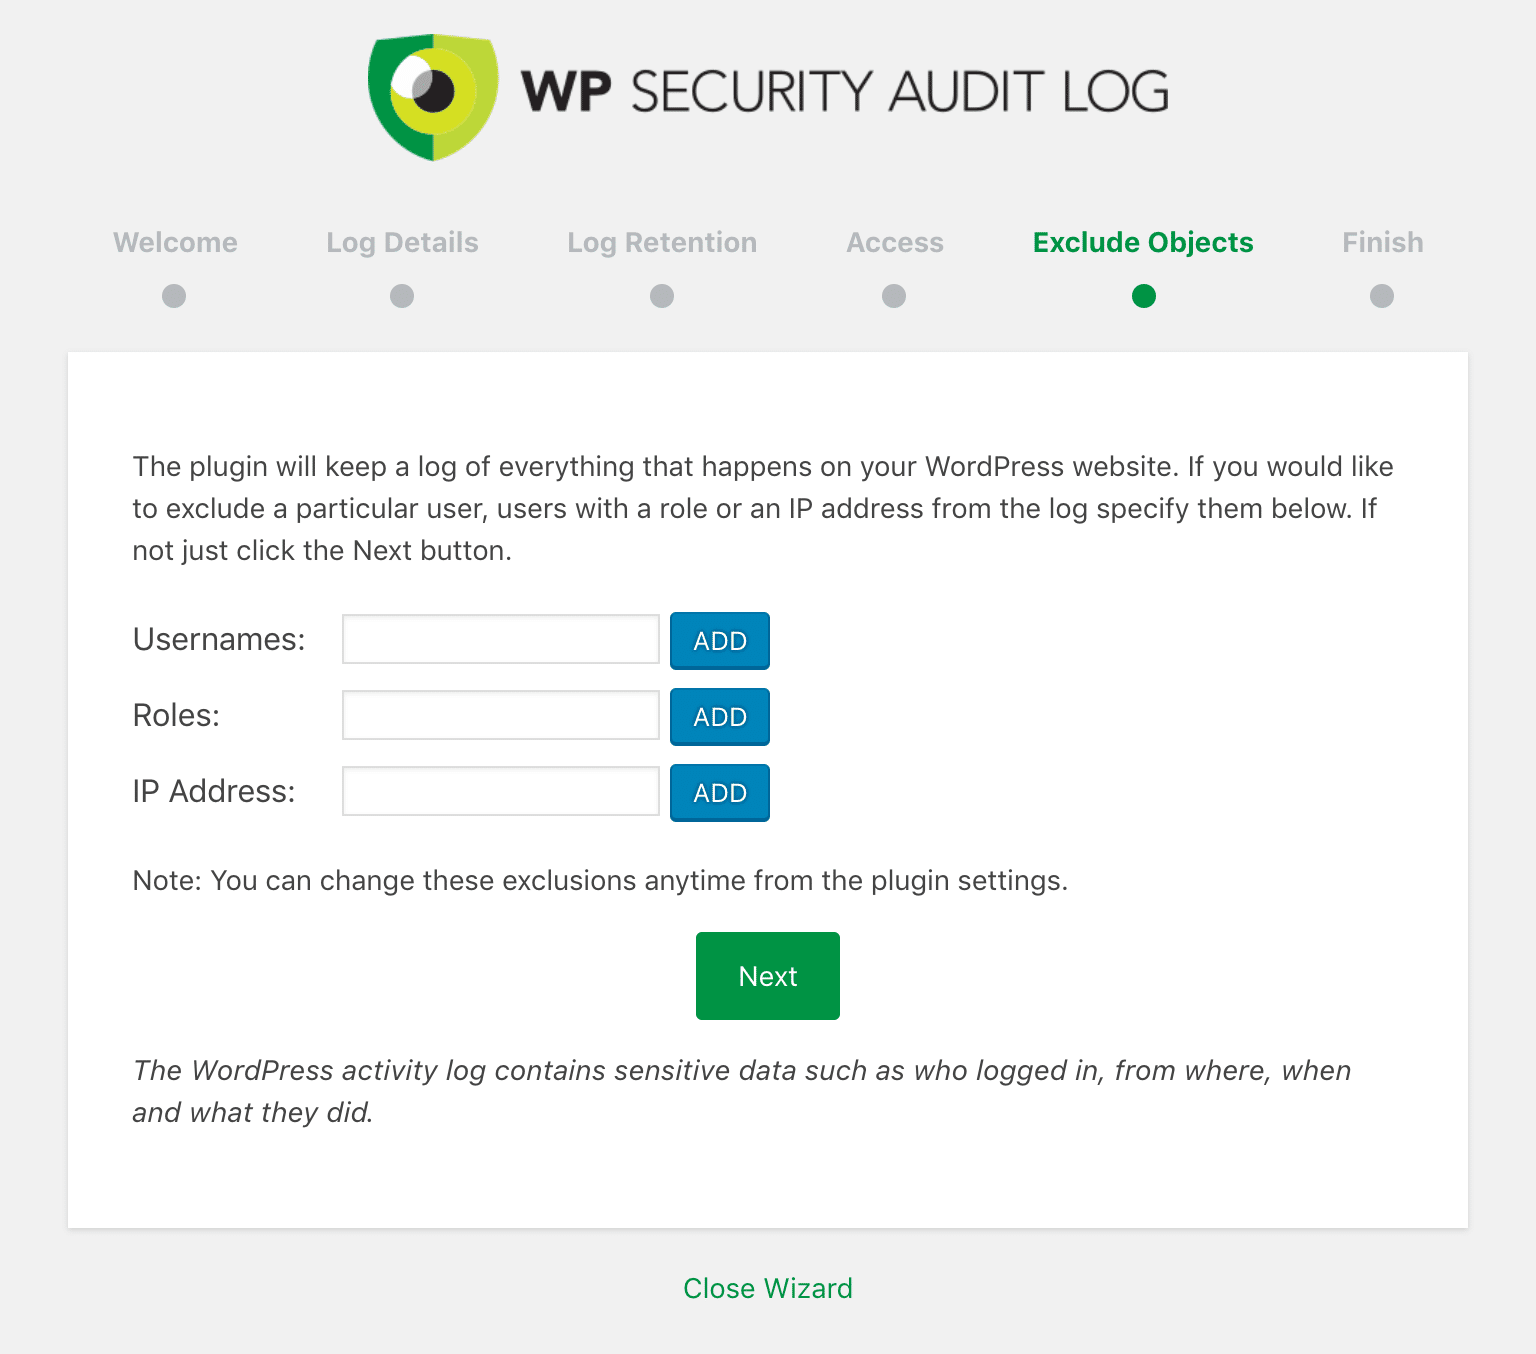 WP Security Audit Log exkludera objekt